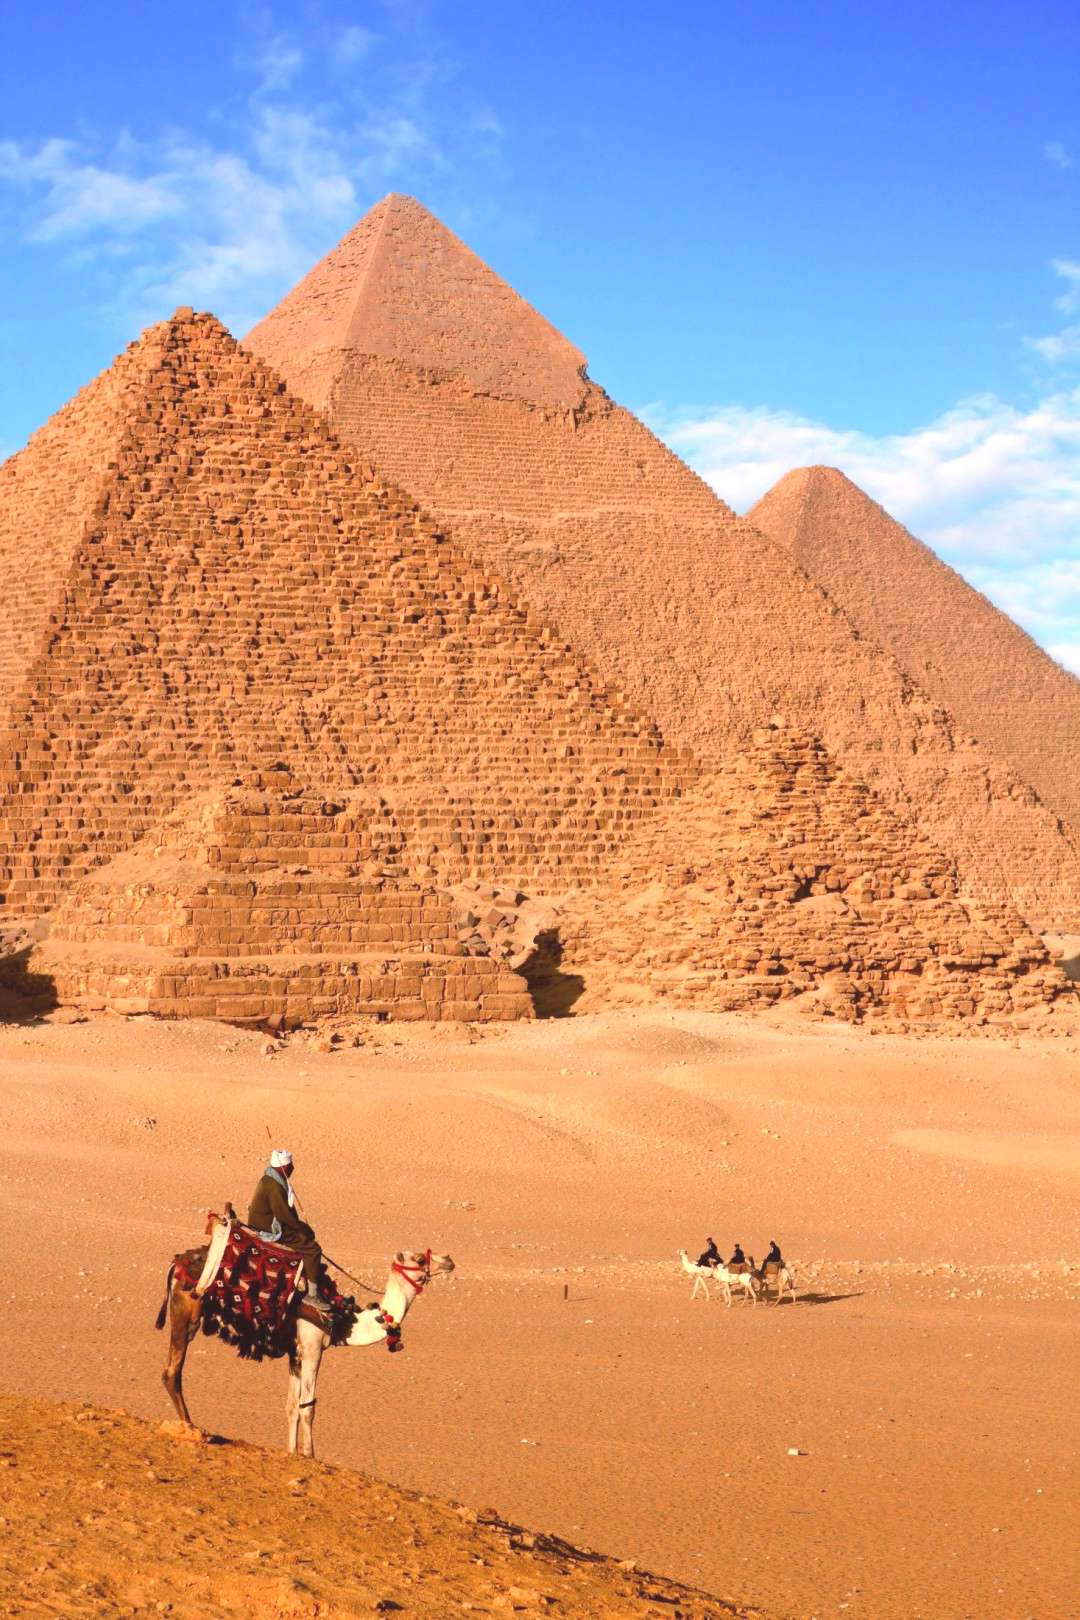 Day Trip from Hurghada to Pyramids by Plane - The Great Pyramids of Giza, one of the most magnific